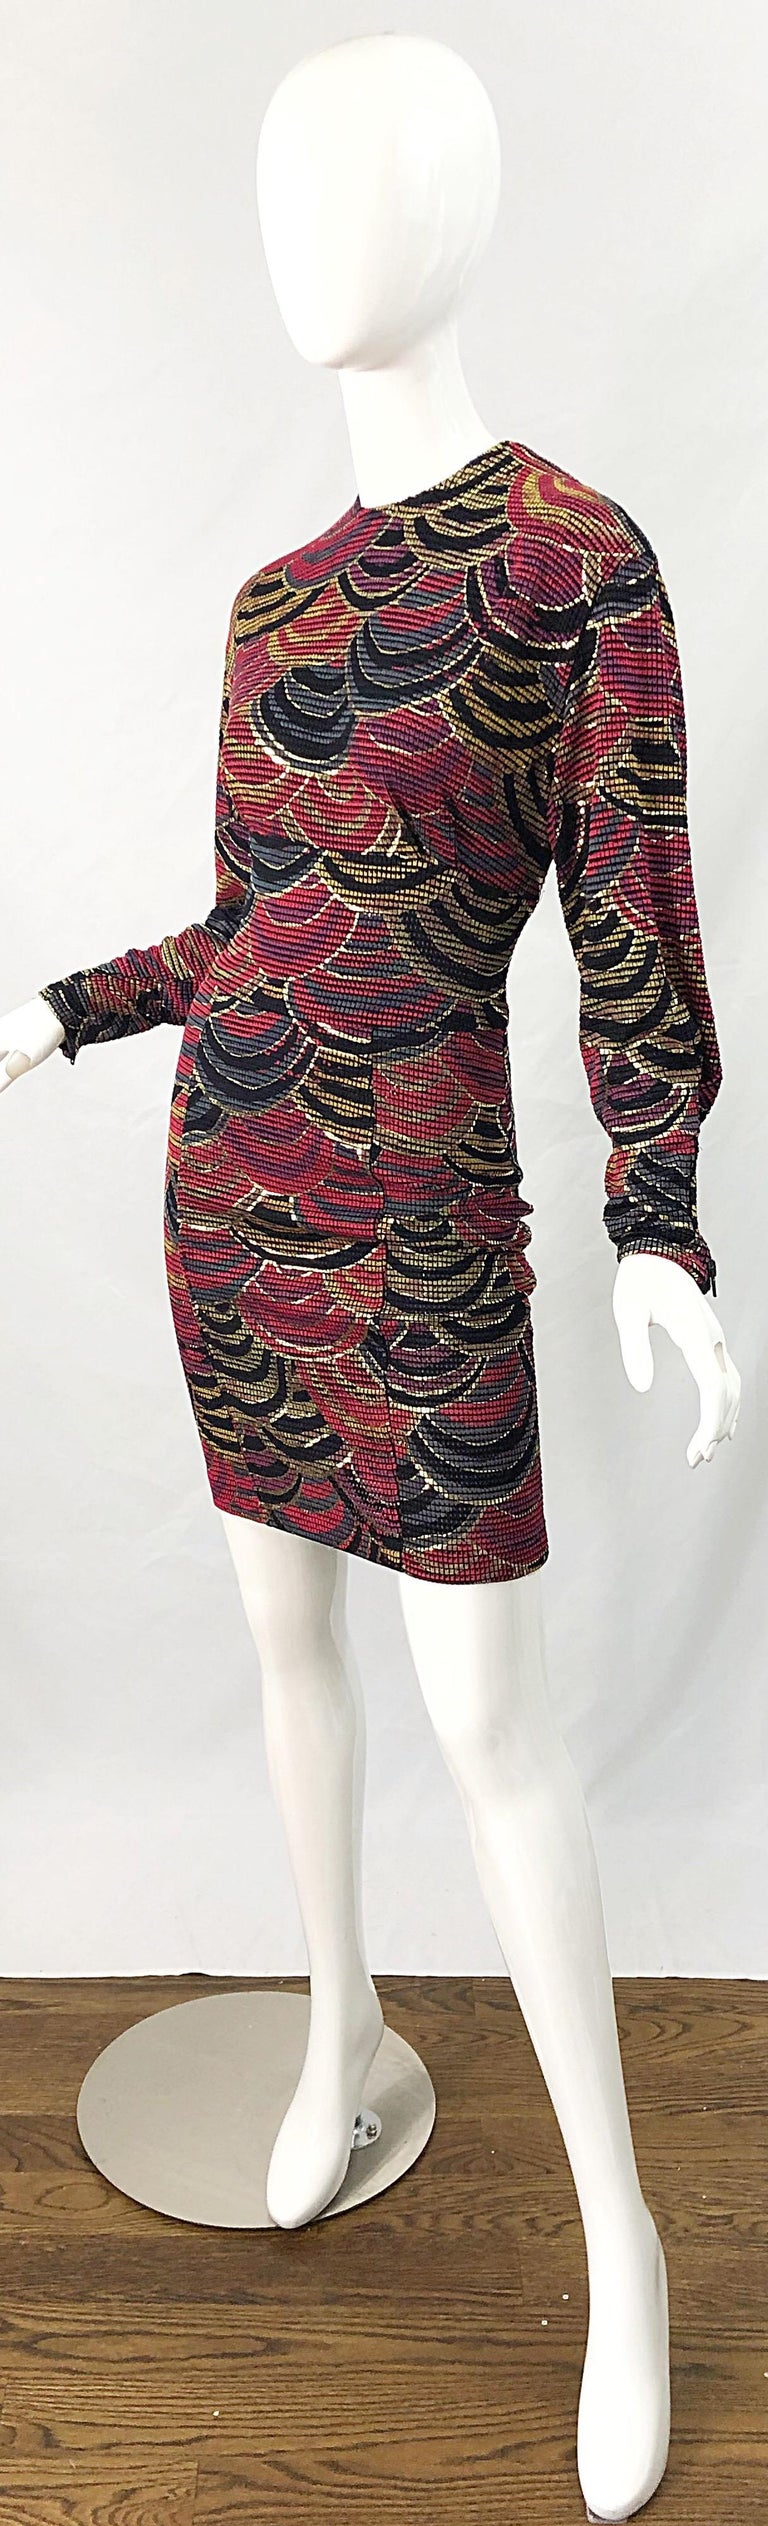 1980s Hand Painted Reversible Red + Gold + Green Vintage 80s Avant Garde Dress For Sale 11